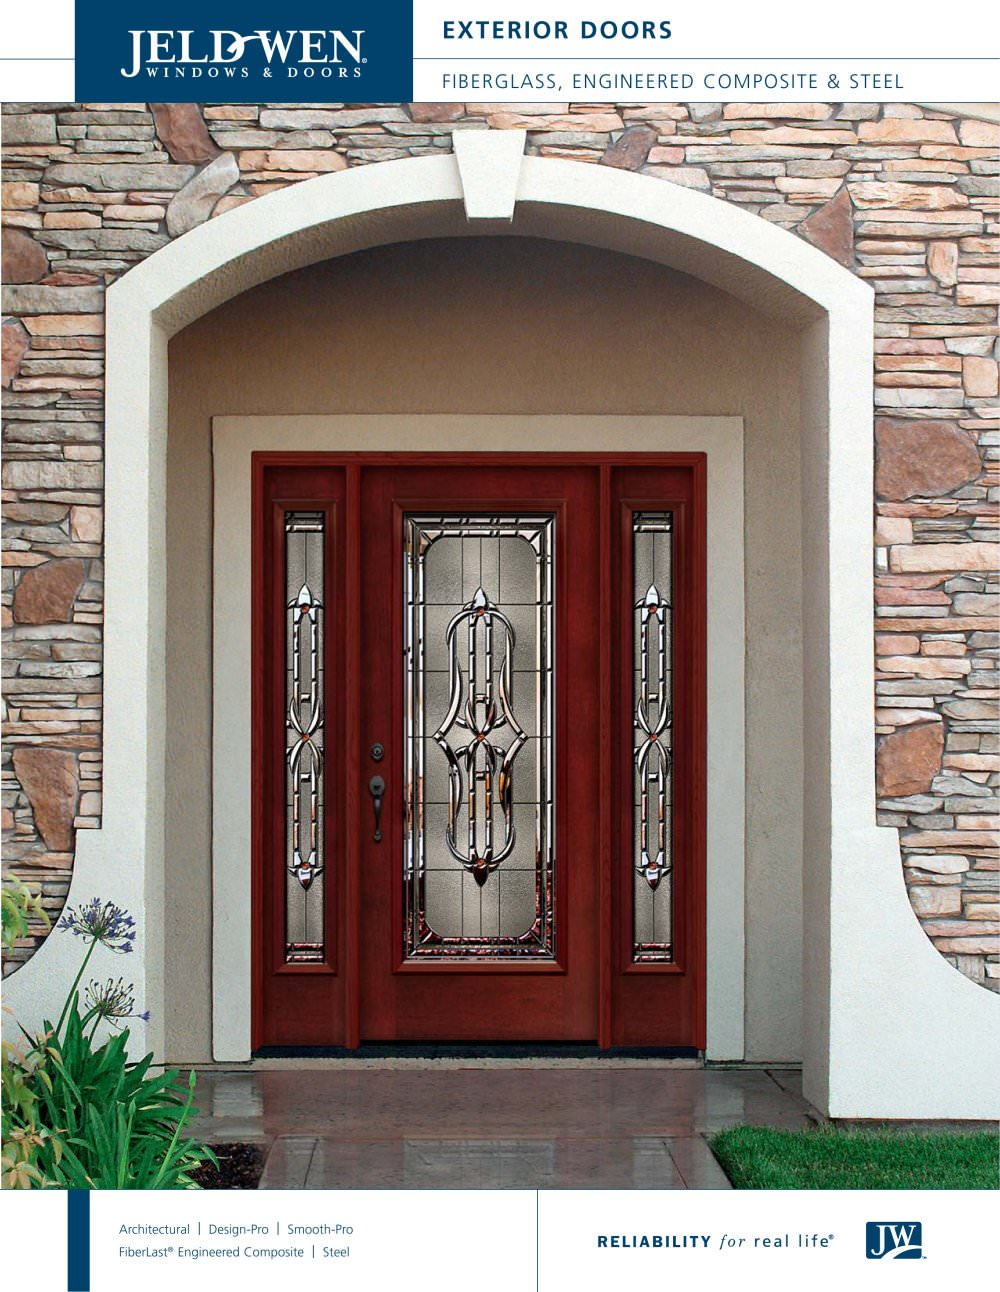 Custom Wood Contemporary Interior & Exterior Doors - JELD-WEN ...